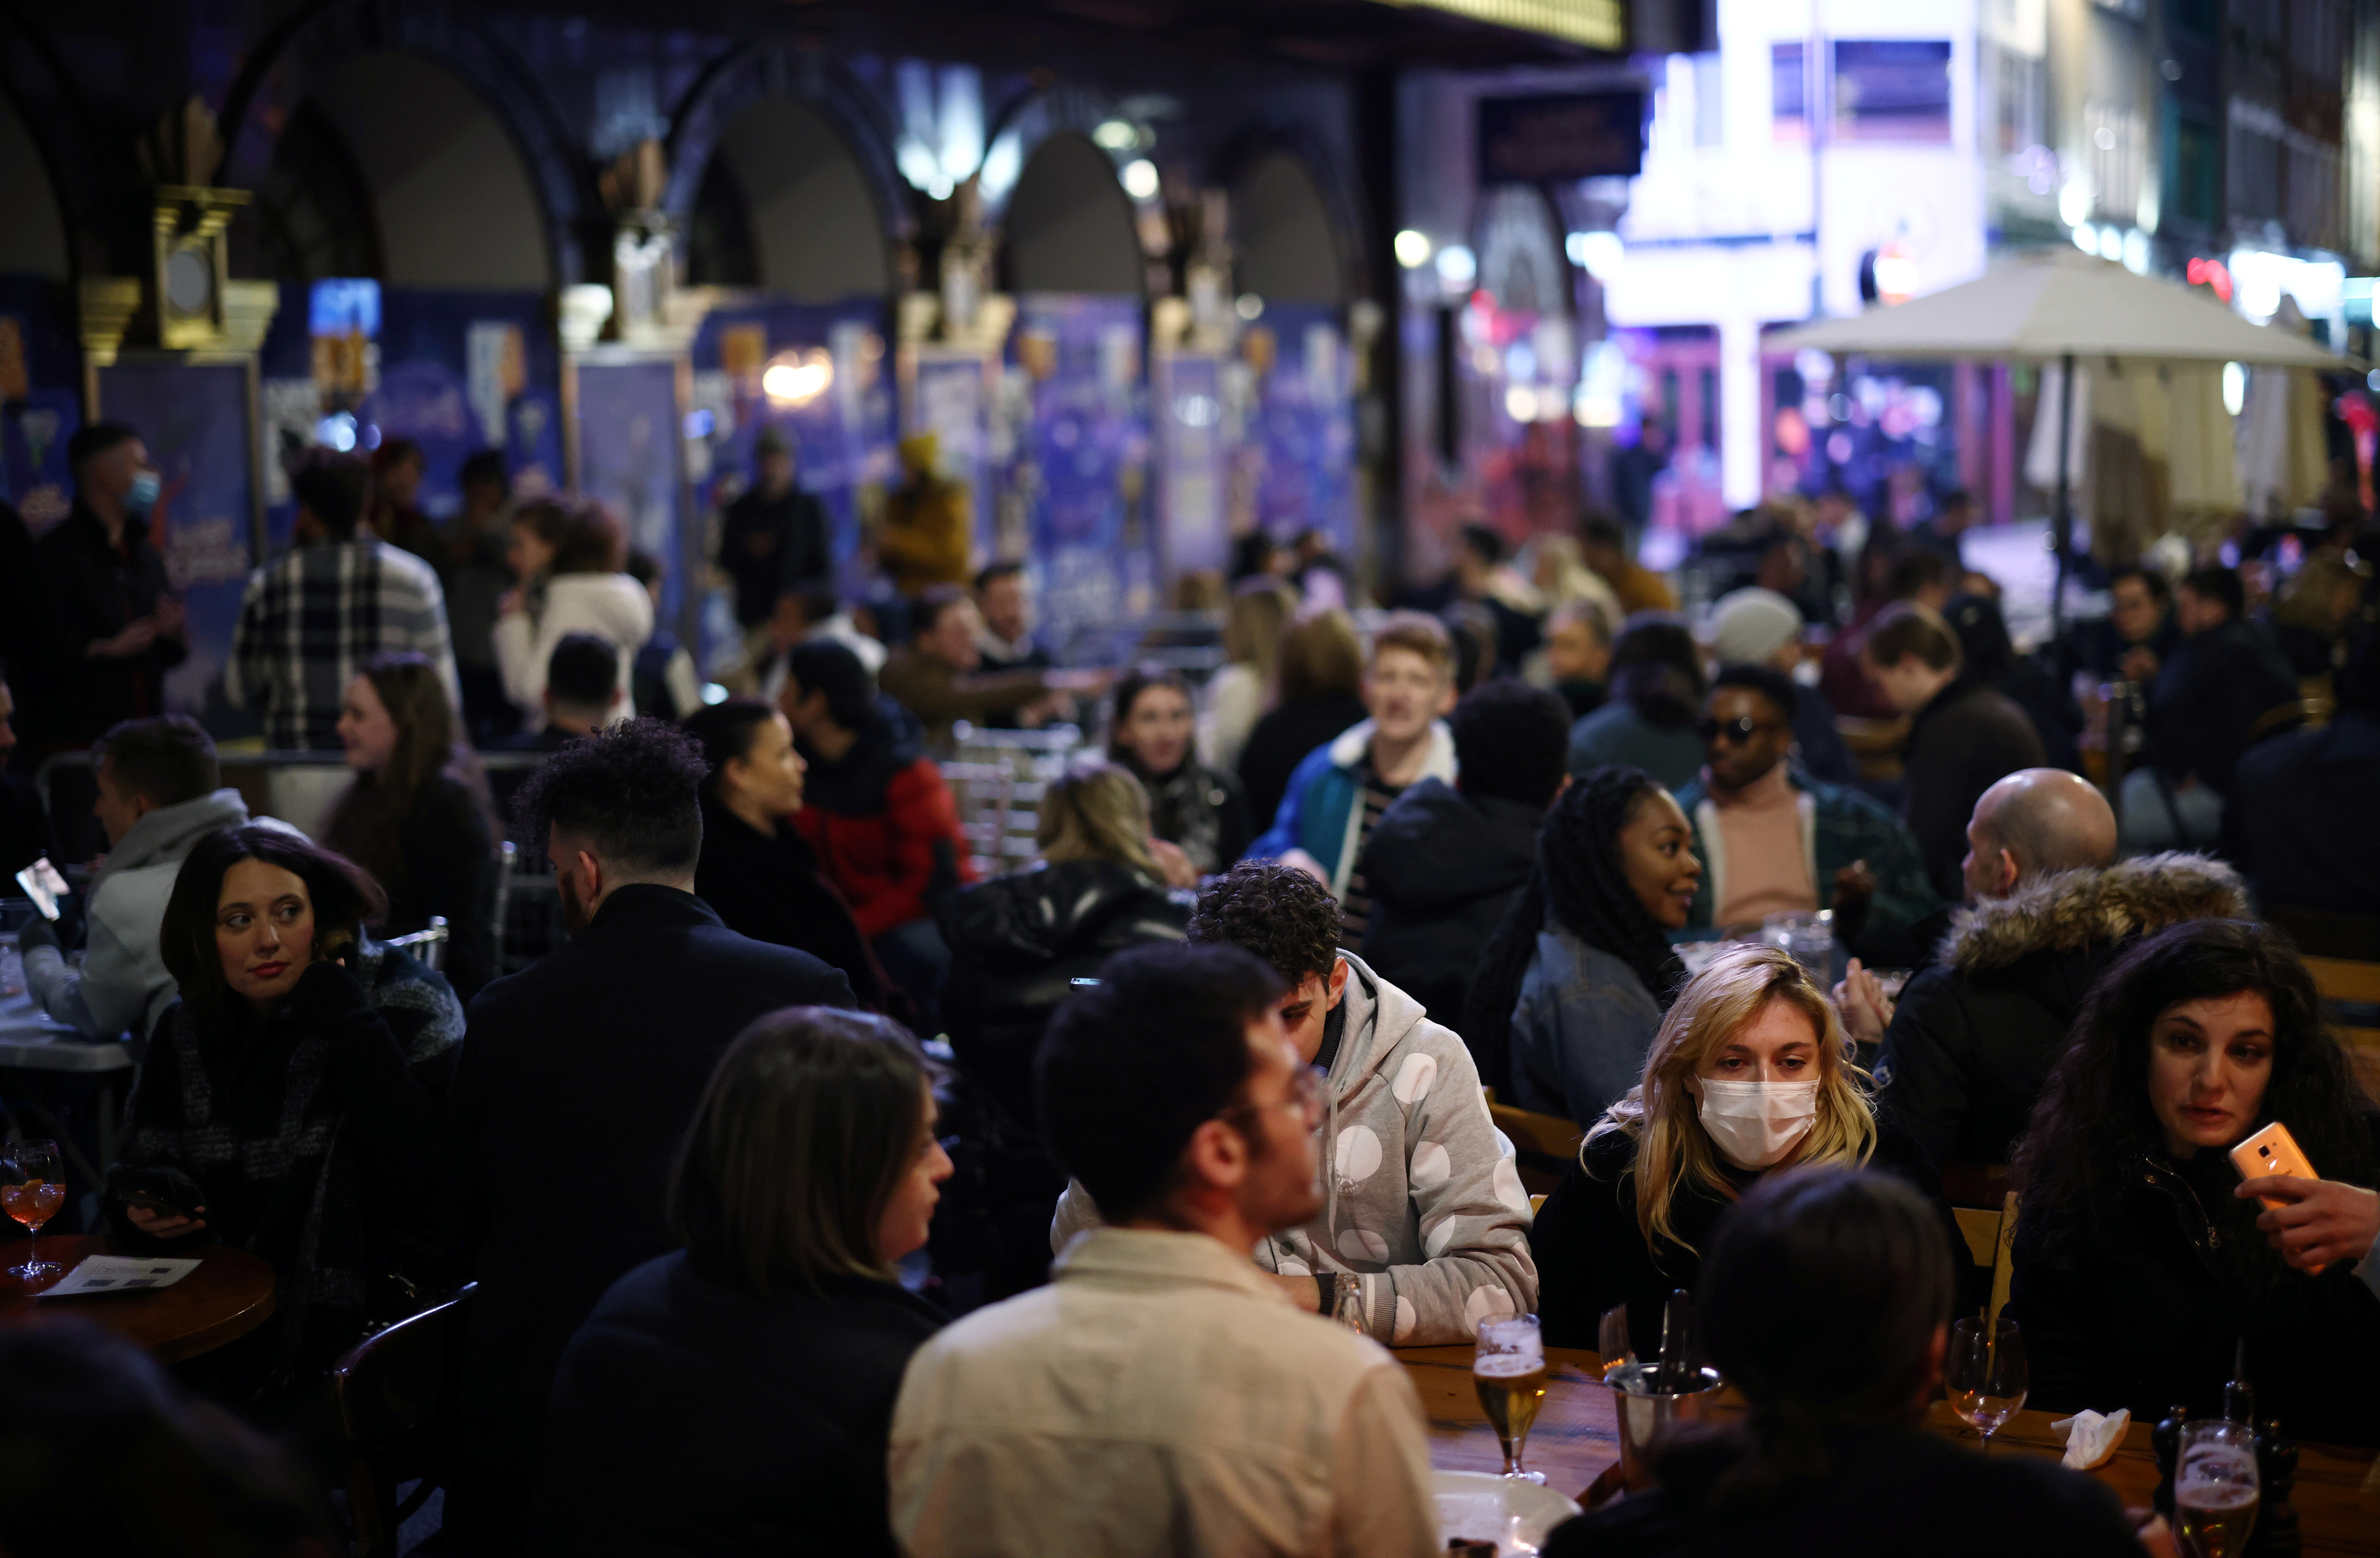 People enjoy the evening at an outside restaurant area in Soho, as the coronavirus disease (COVID-19) restrictions ease, in London, Britain April 12, 2021. REUTERS/Henry Nicholls/File photo